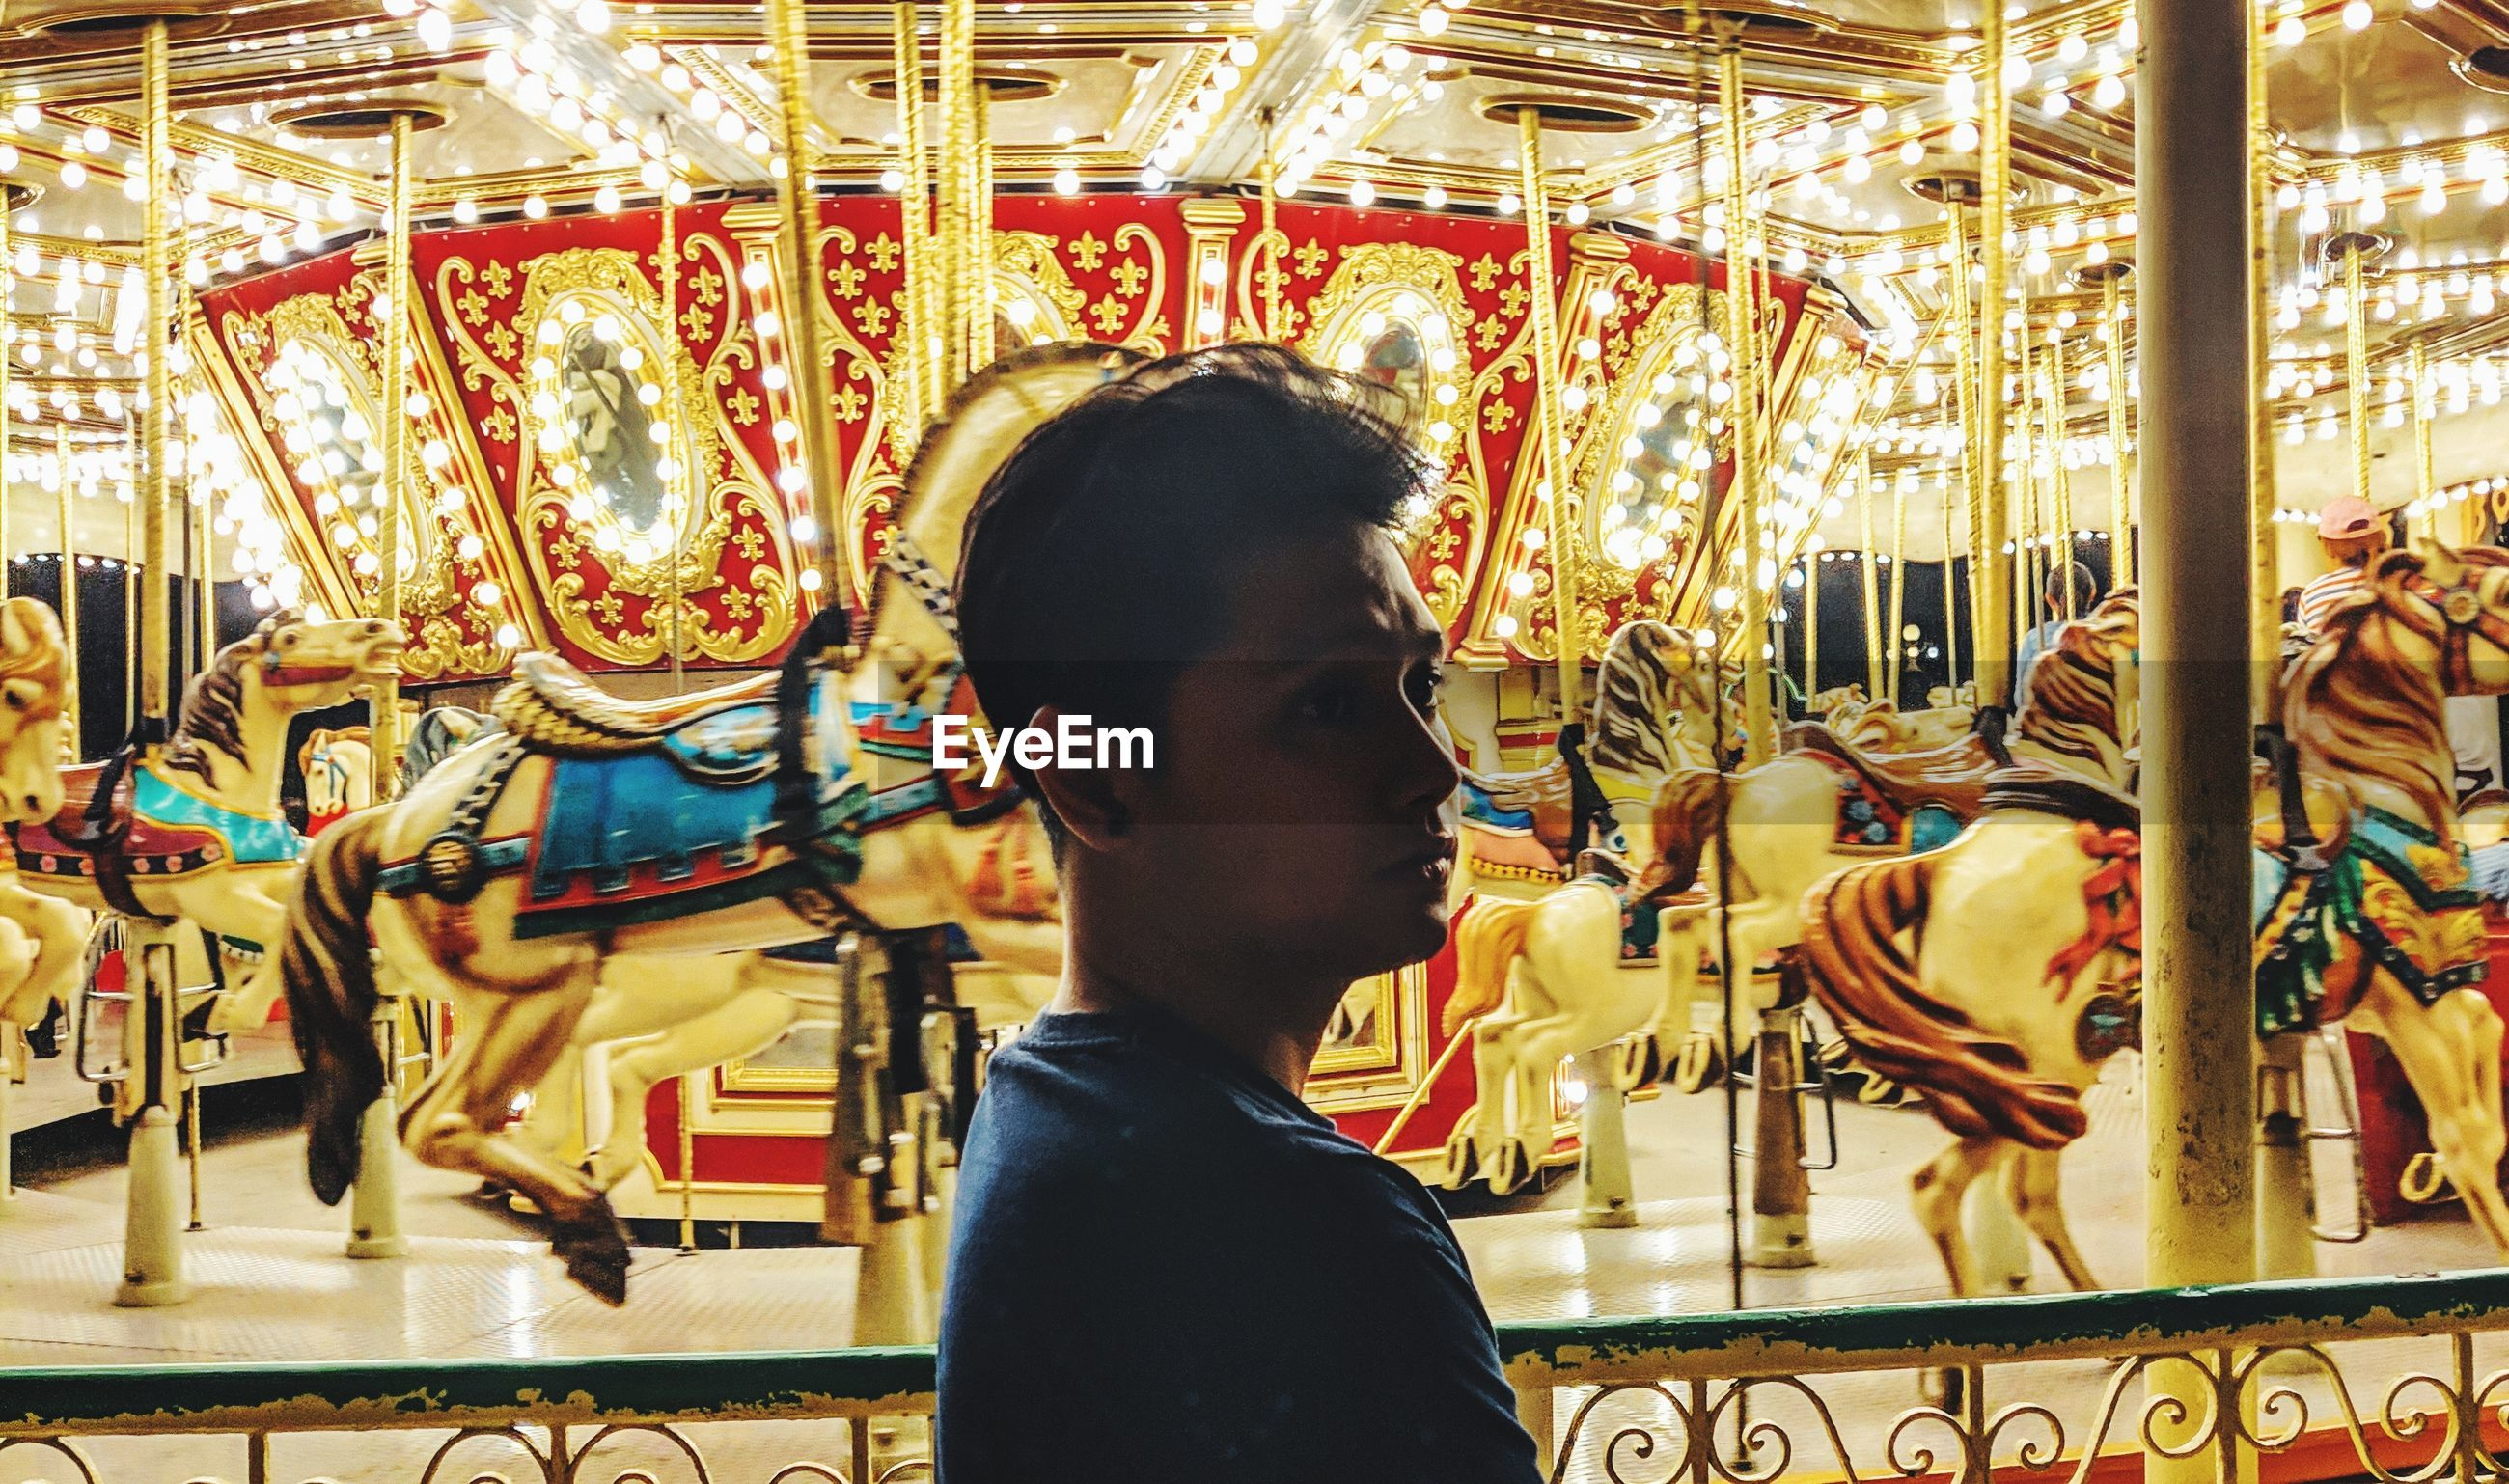 SIDE VIEW OF BOY LOOKING AT CAROUSEL